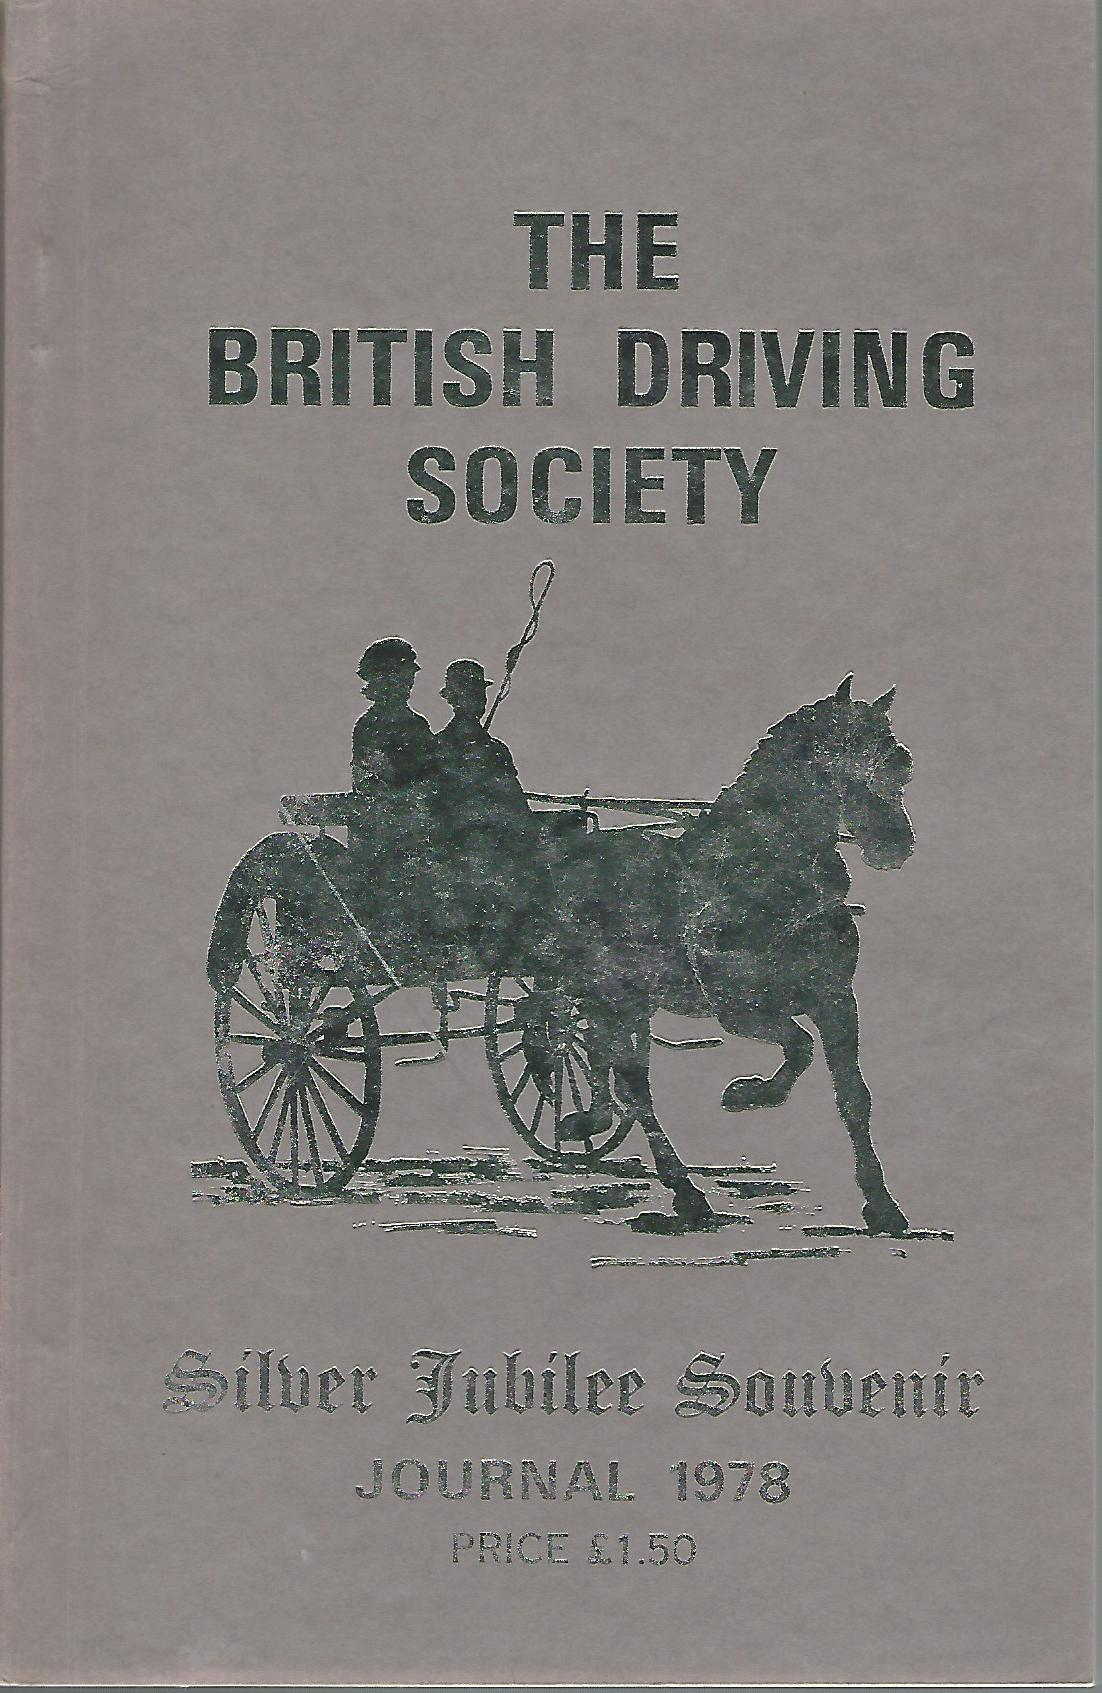 Image for The British Driving Society Journal 1978. Silver Jubilee Souvenir.